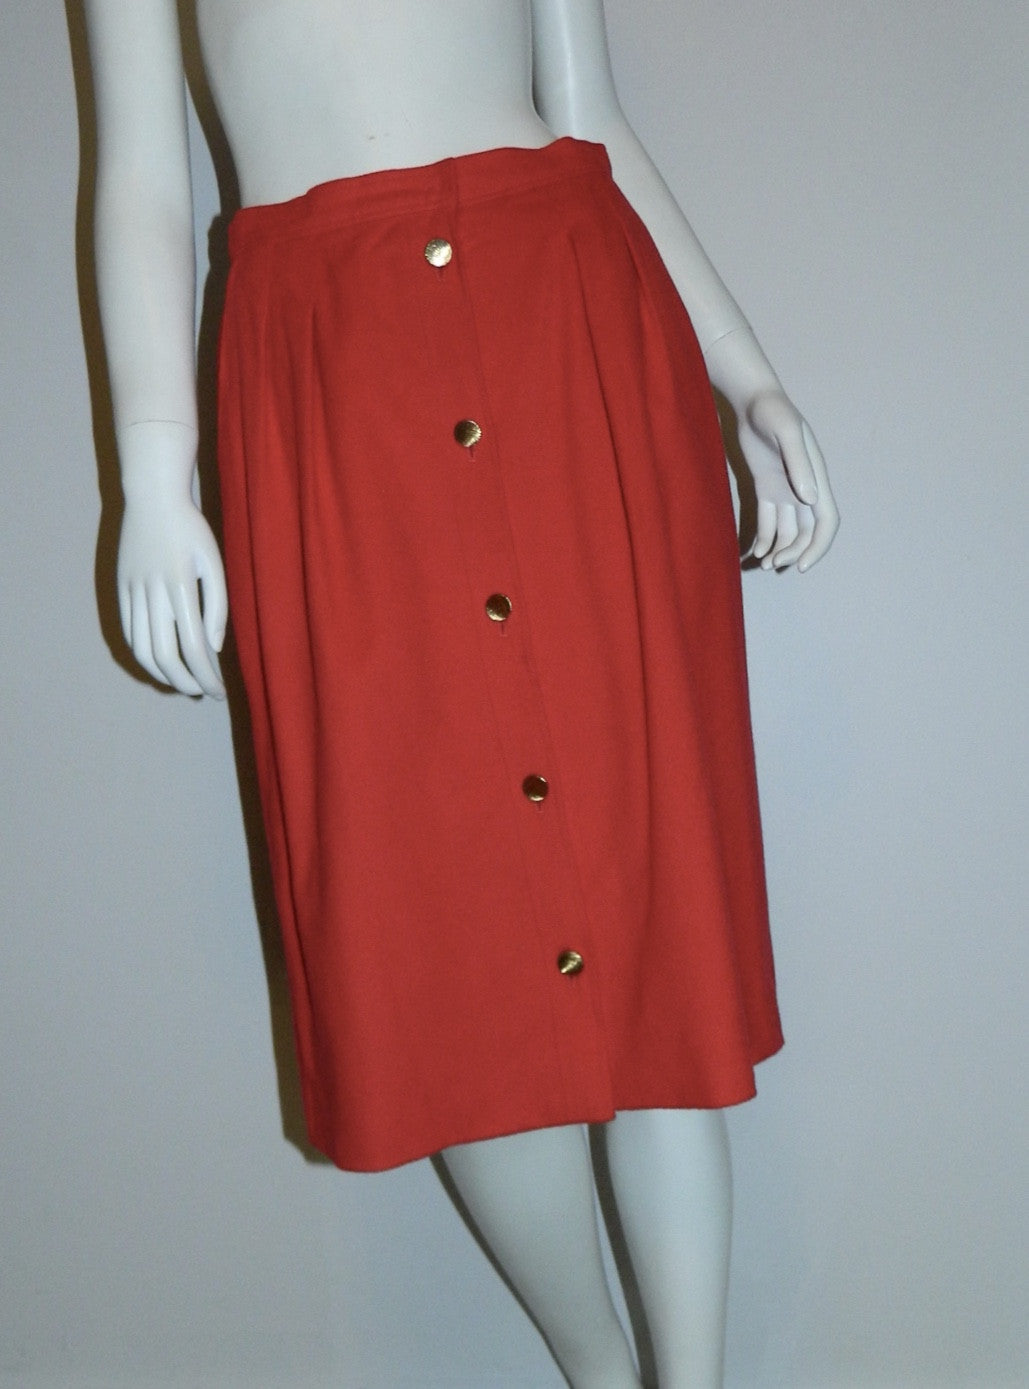 vintage 1980s skirt red cashmere Loro Piana button front midi skirt M